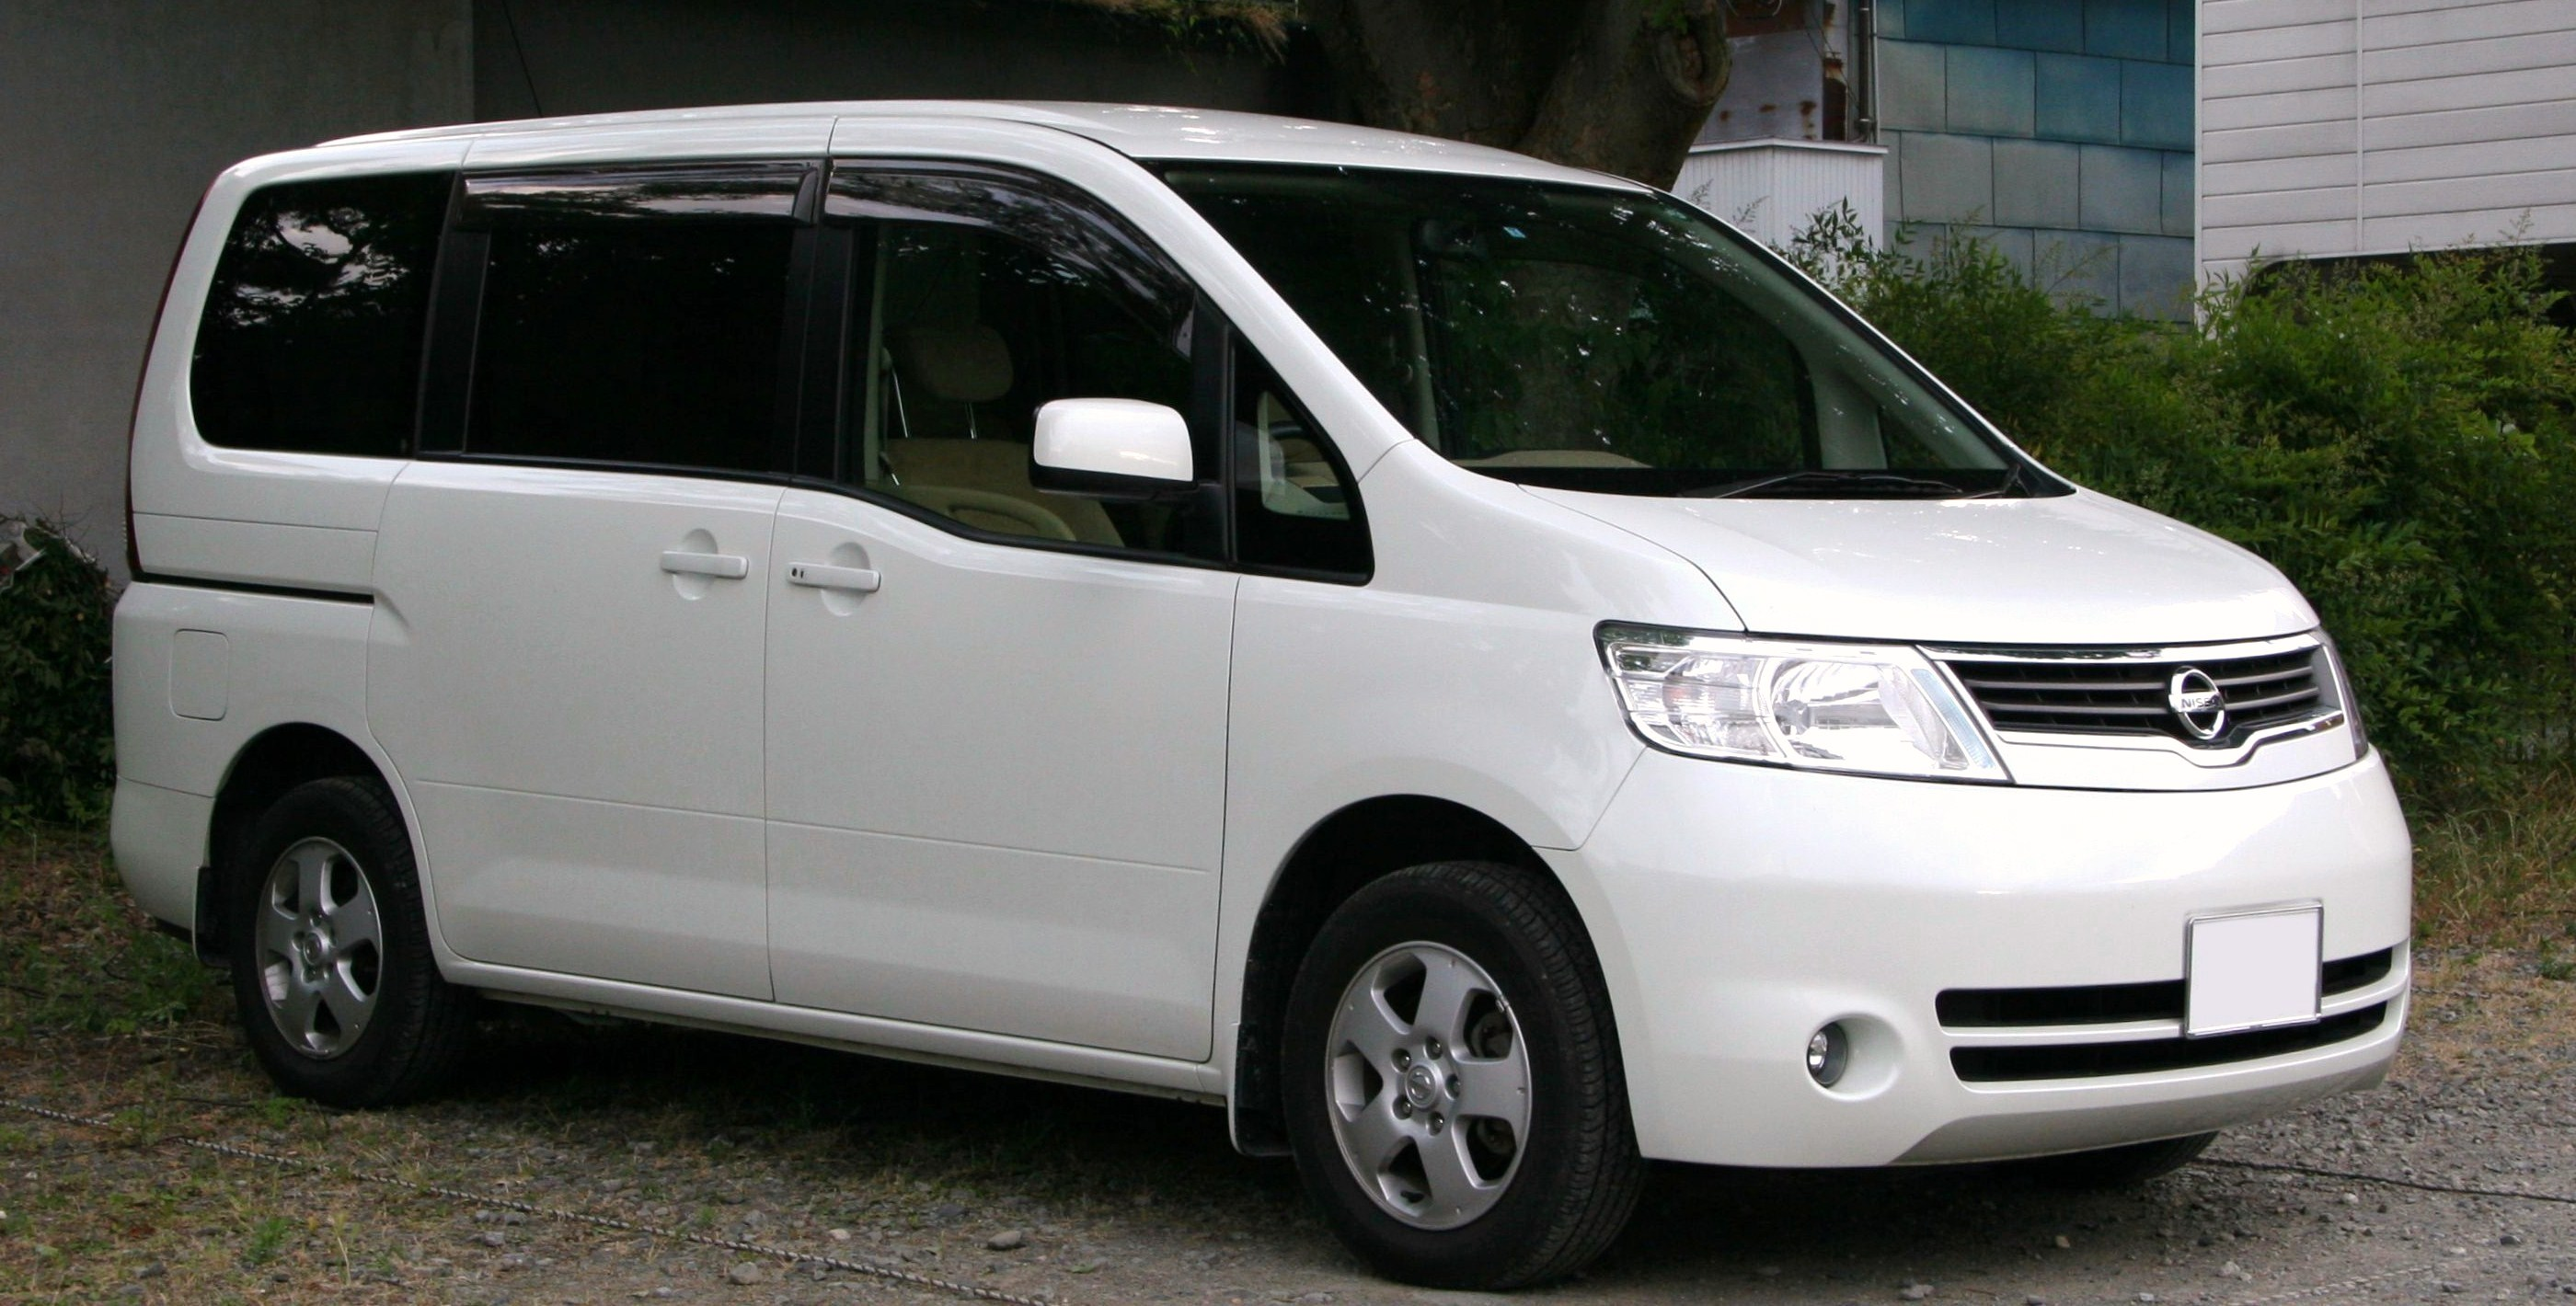 2000 Nissan Serena (c24) – pictures, information and specs ...